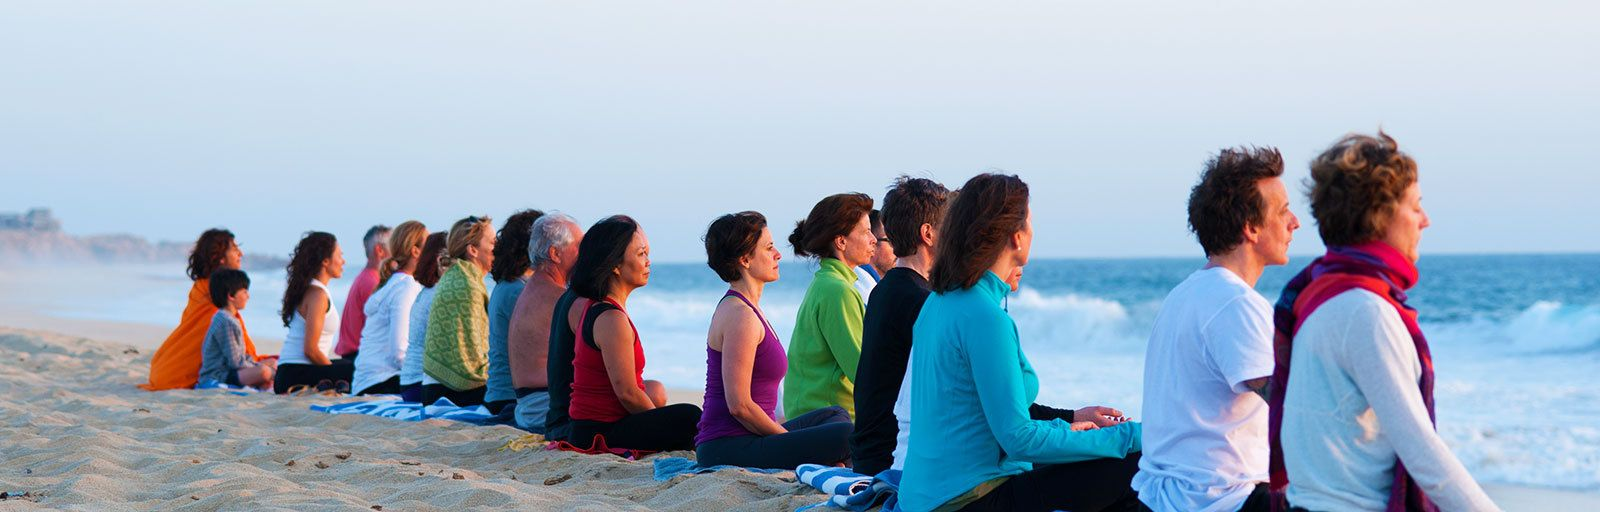 Melbourne & Vero Beach Florida Group Meditation Meetup